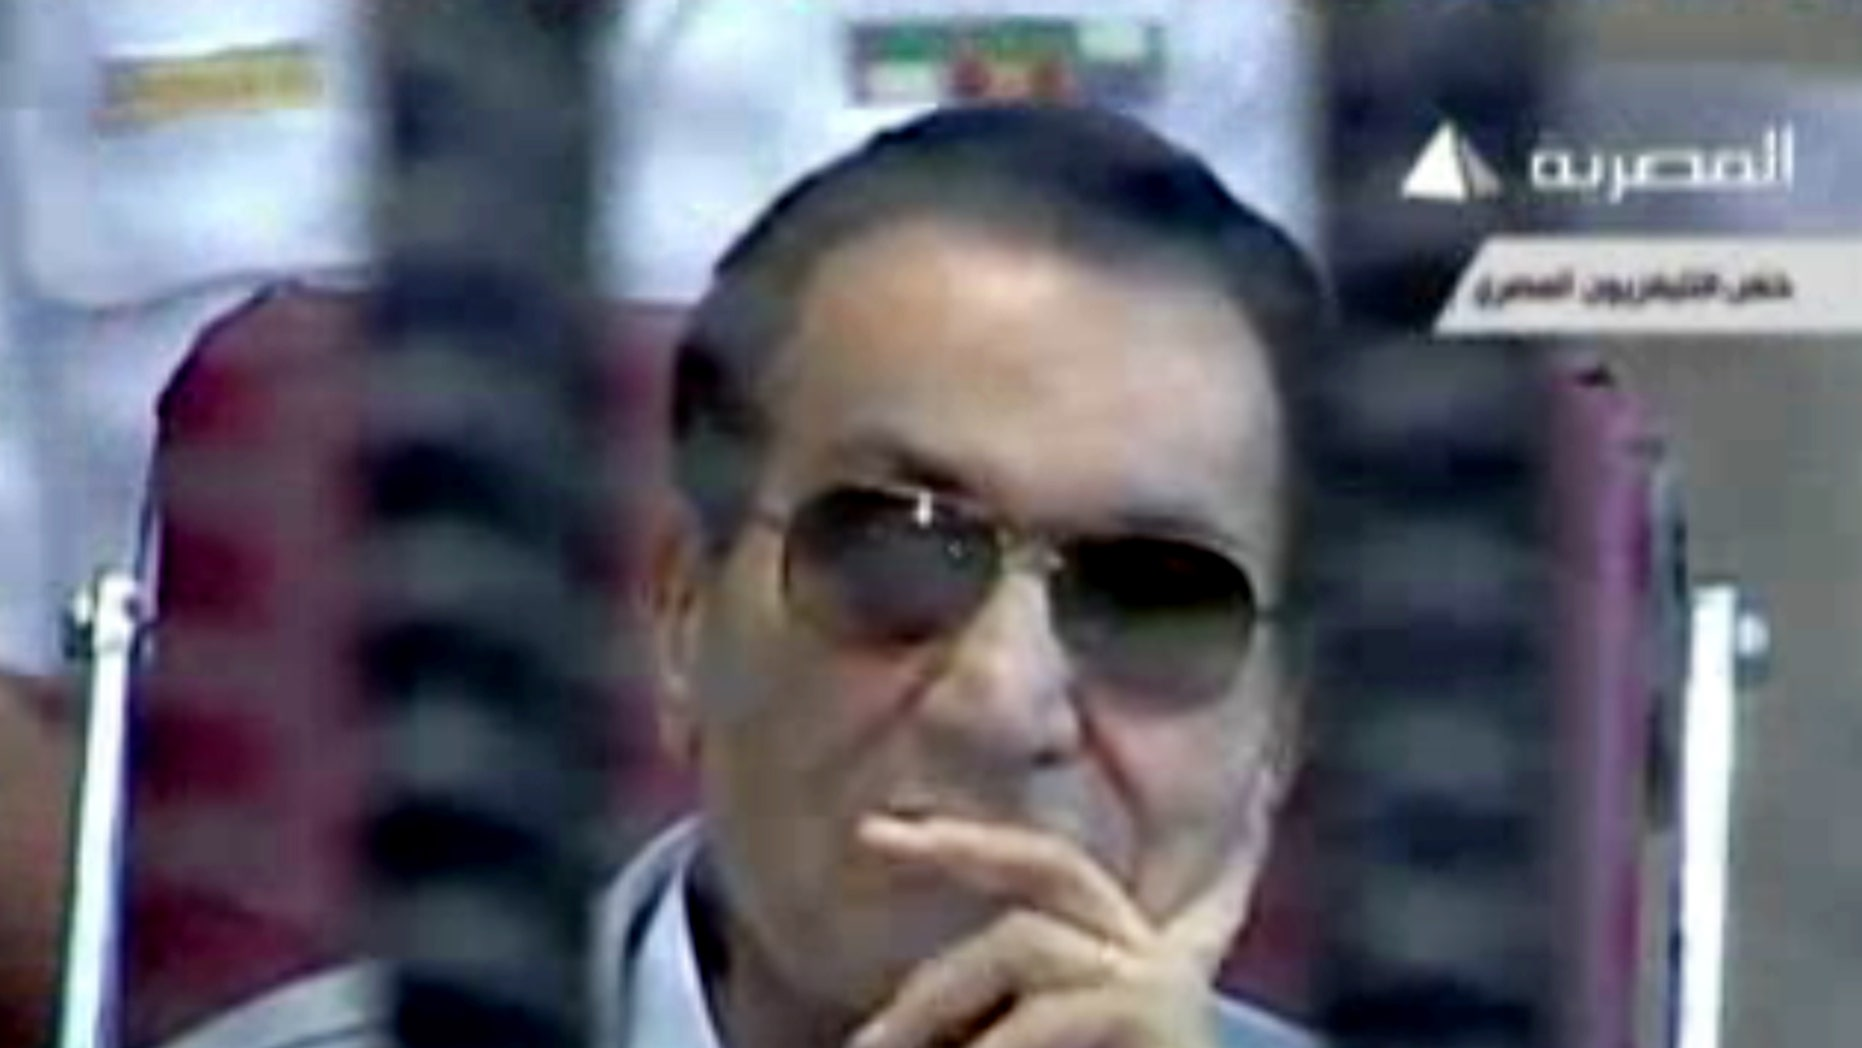 This image made from video broadcast on Egyptian state television shows former President Hosni Mubarak inside the defendant's cage in a courtroom in Cairo, Egypt, Saturday, May 11, 2013. The retrial of former Egyptian President Hosni Mubarak resumed Saturday, with prosecutors requesting to present new evidence from a fact-finding commission's report that claims the ex-leader had full knowledge of the extent of the violence used against protesters. (AP Photo/Egyptian State Television via AP video)